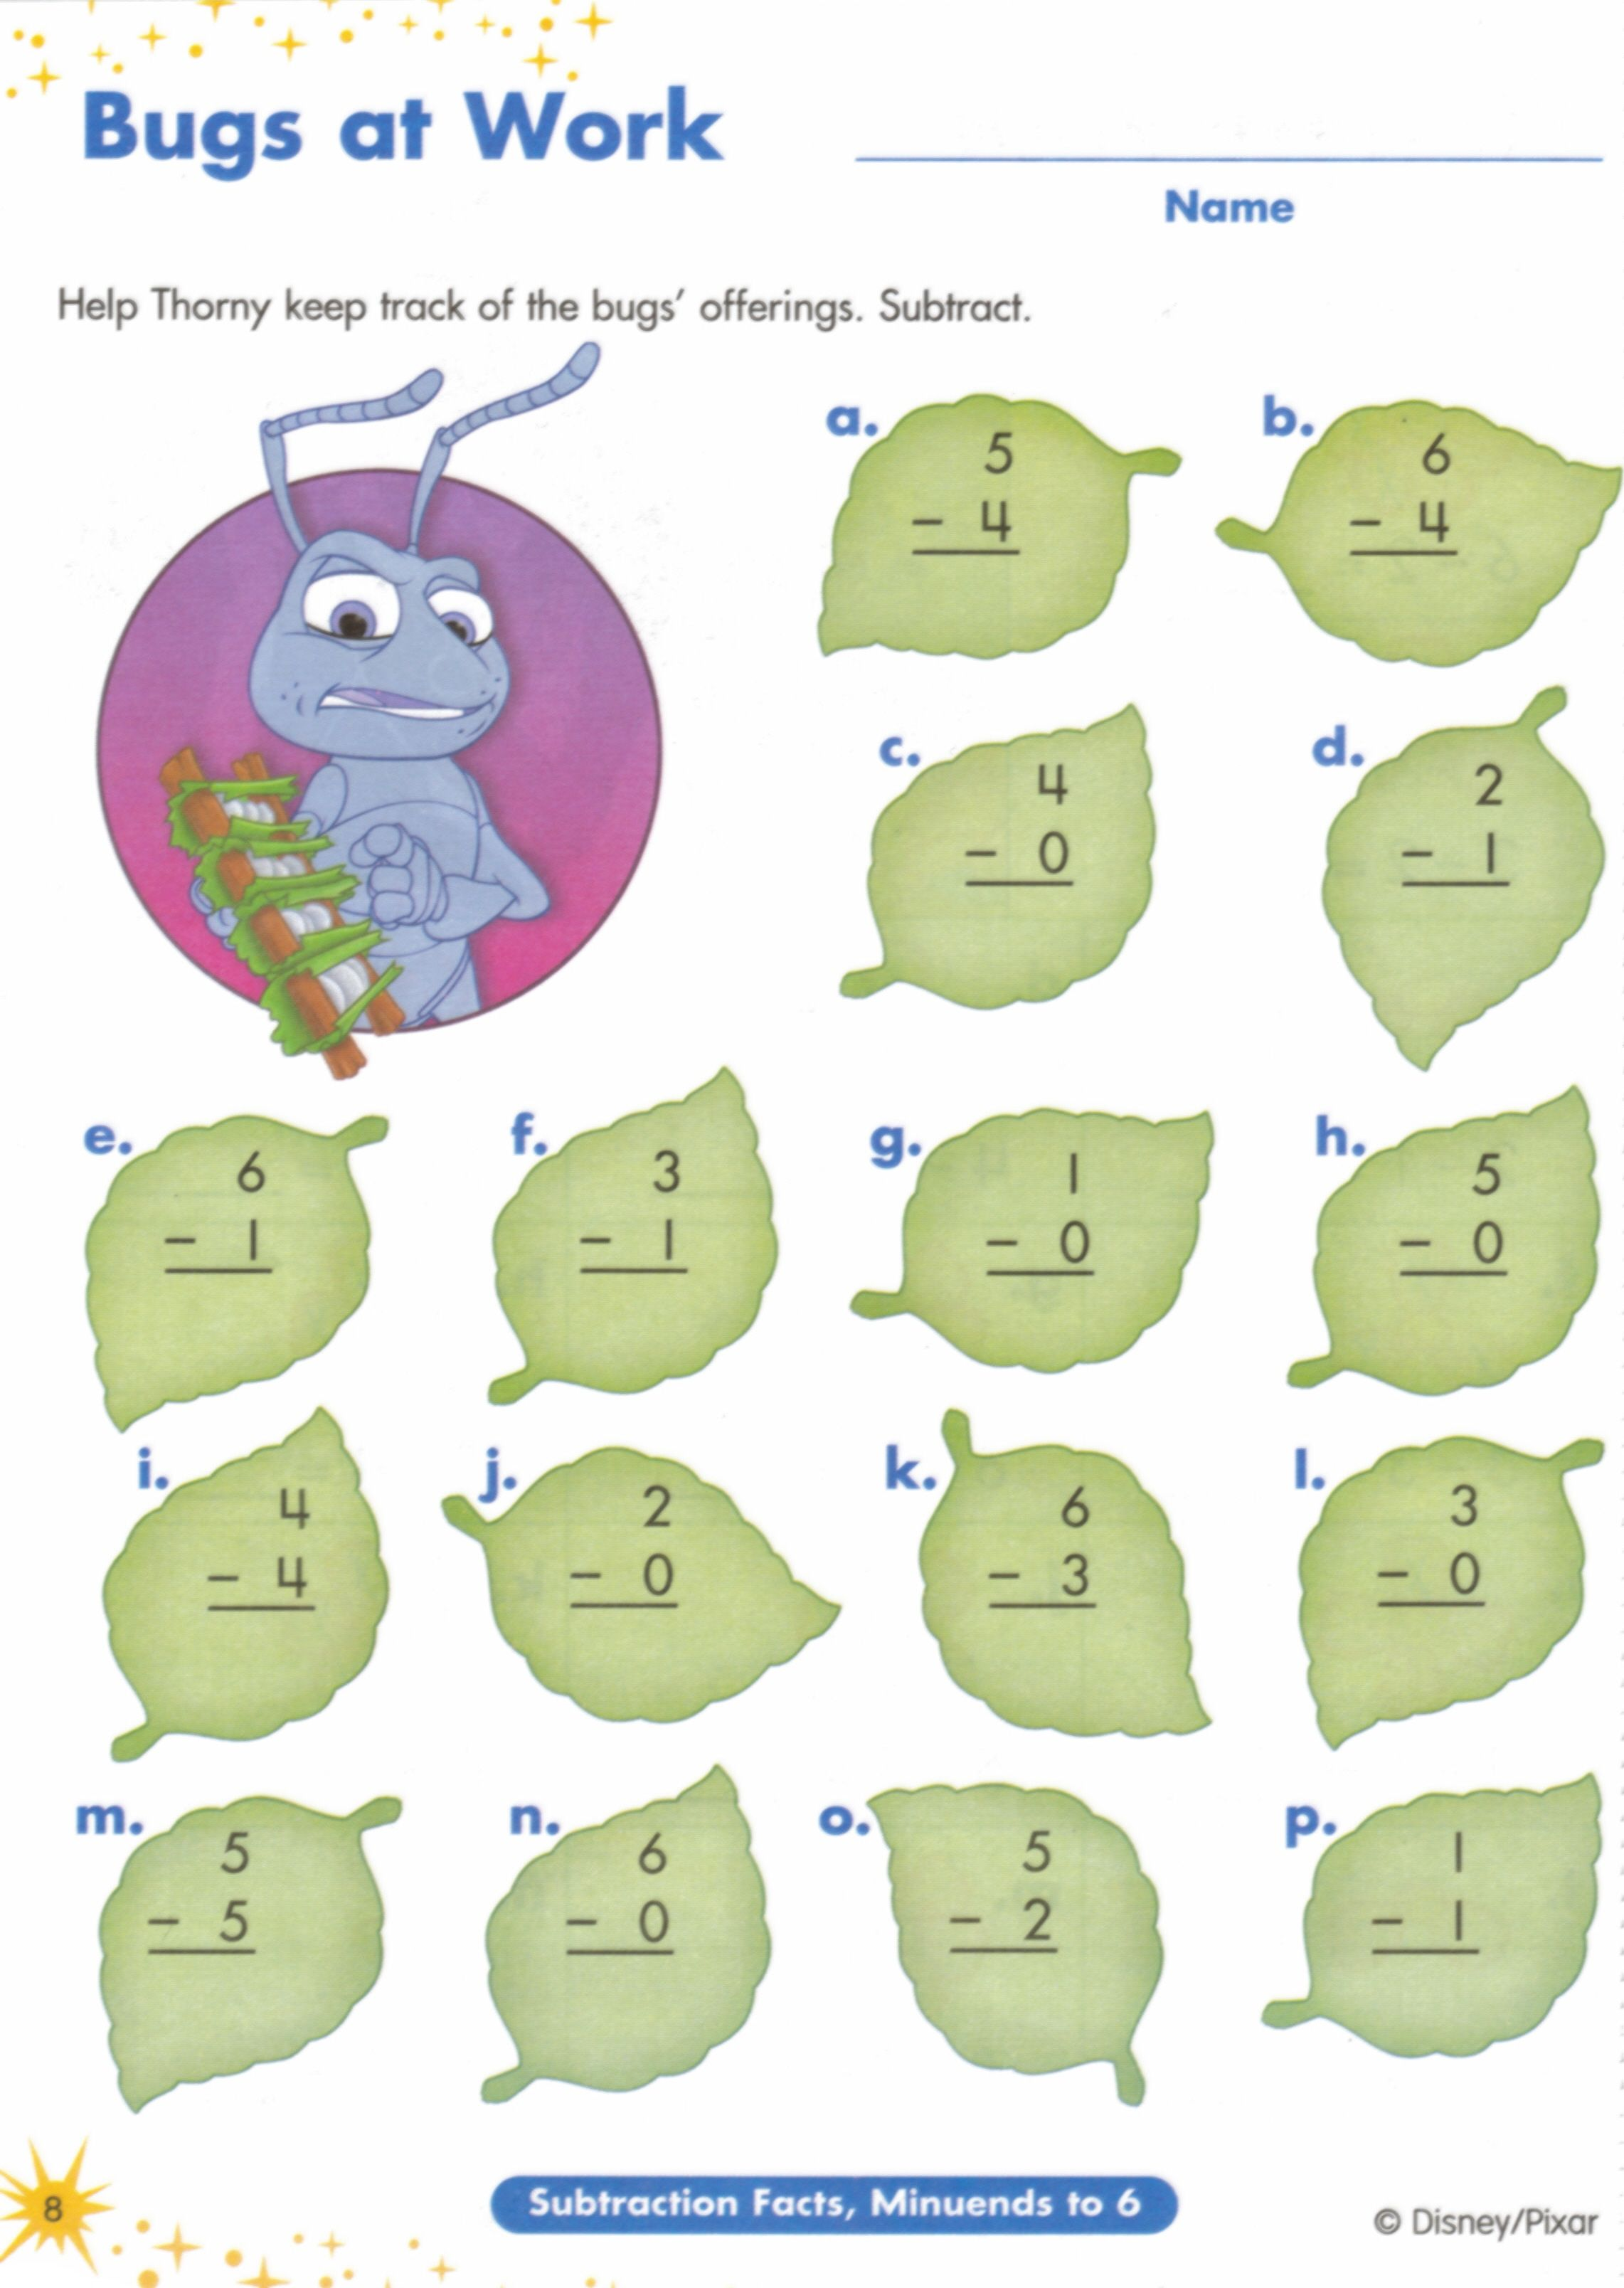 Proatmealus  Remarkable  Images About Worksheets On Pinterest  Fun Facts For Kids  With Marvelous  Images About Worksheets On Pinterest  Fun Facts For Kids Earth Day Worksheets And Jungles With Beauteous Math Word Problems Worksheets Th Grade Also Math Addition Worksheets Printable In Addition Reading And Writing Numbers Worksheet And Nd Grade Reading Worksheets Printable As Well As Story Worksheet Additionally Helping Verb Worksheets Rd Grade From Pinterestcom With Proatmealus  Marvelous  Images About Worksheets On Pinterest  Fun Facts For Kids  With Beauteous  Images About Worksheets On Pinterest  Fun Facts For Kids Earth Day Worksheets And Jungles And Remarkable Math Word Problems Worksheets Th Grade Also Math Addition Worksheets Printable In Addition Reading And Writing Numbers Worksheet From Pinterestcom